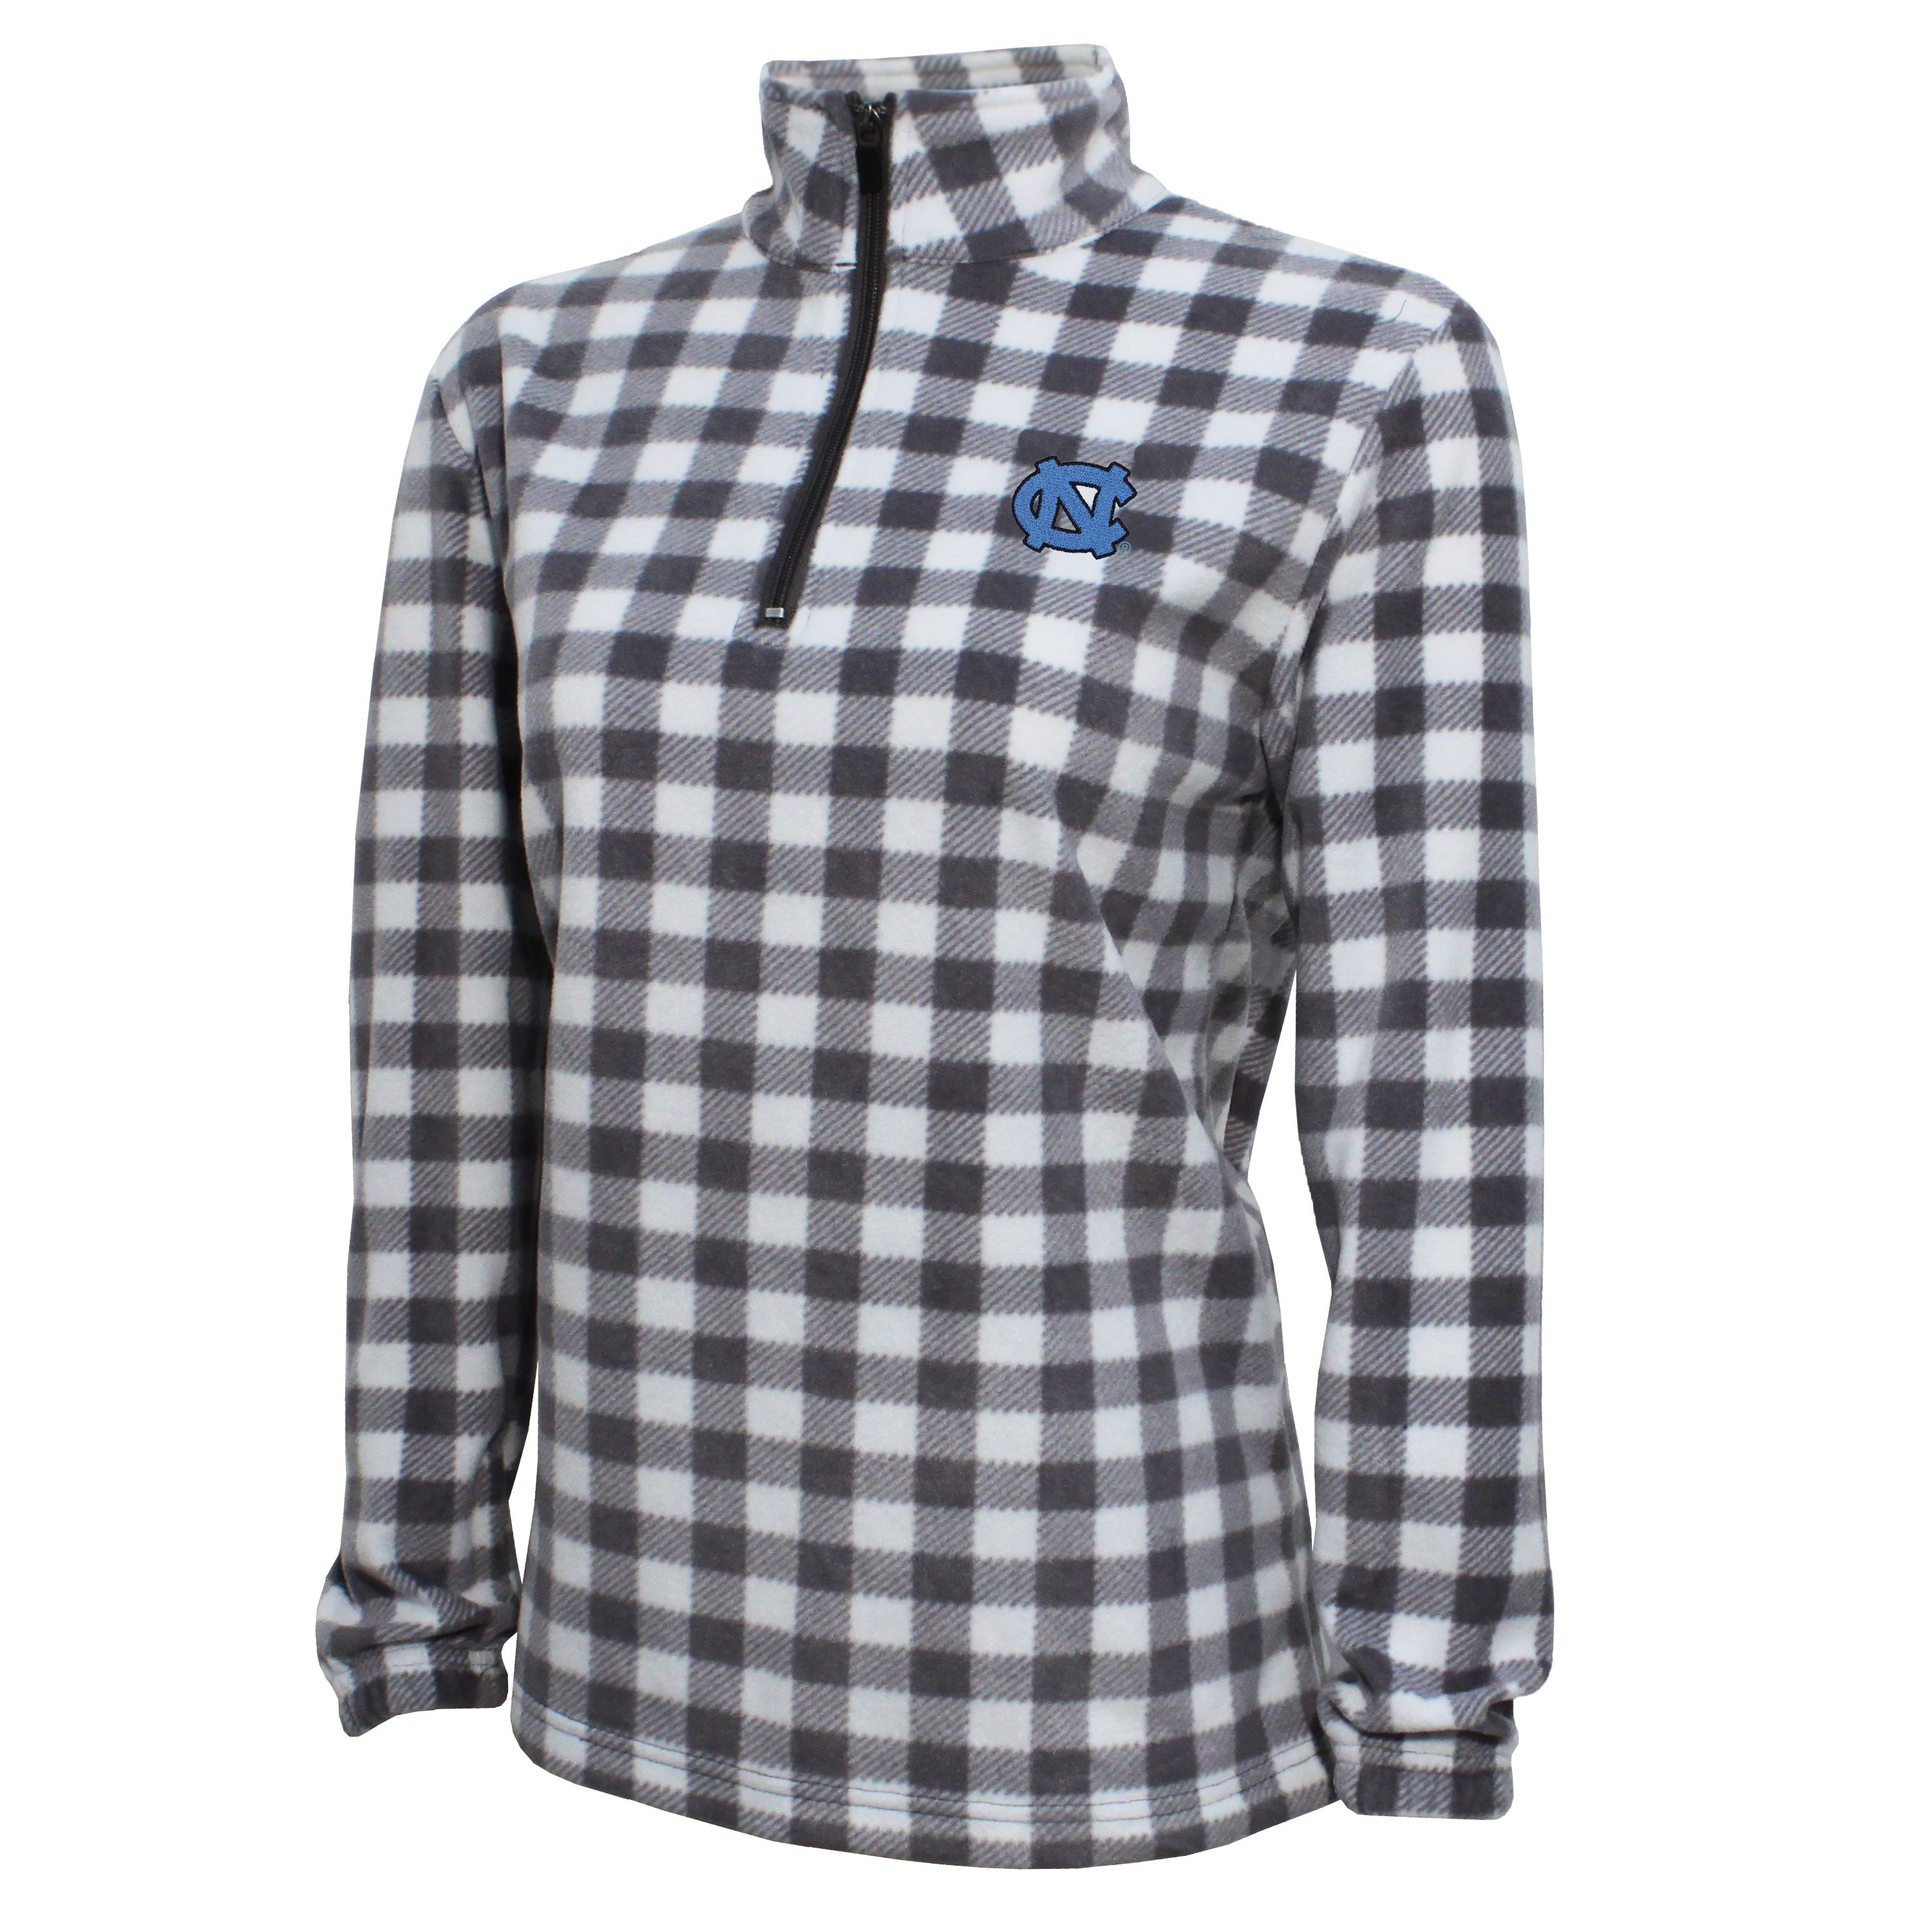 Campus Specialties North Carolina Women's Gray Buffalo Check Fleece